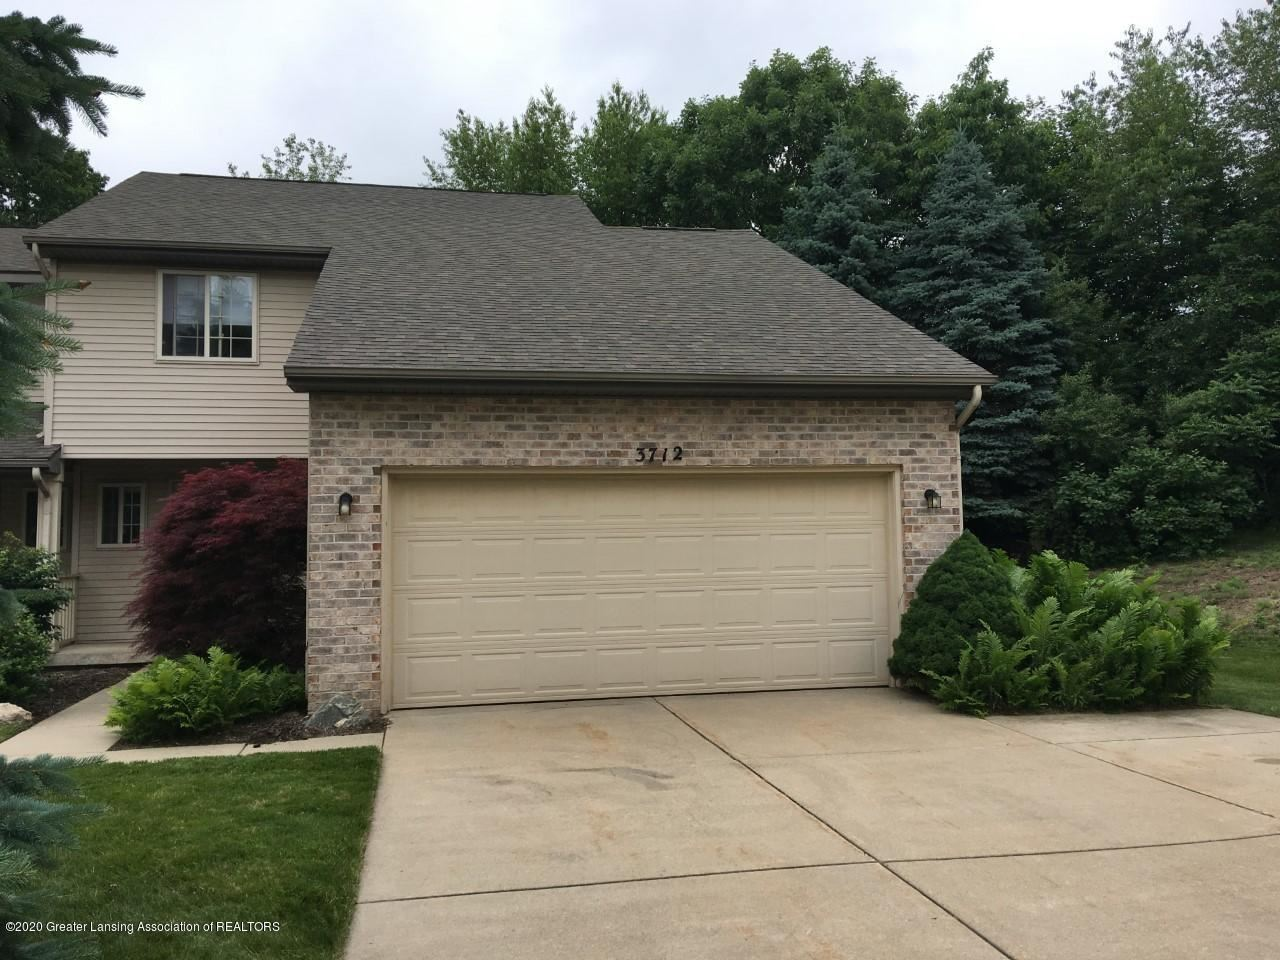 Photo of 3712 Taos Circle, Okemos, MI 48864 (MLS # 244670)